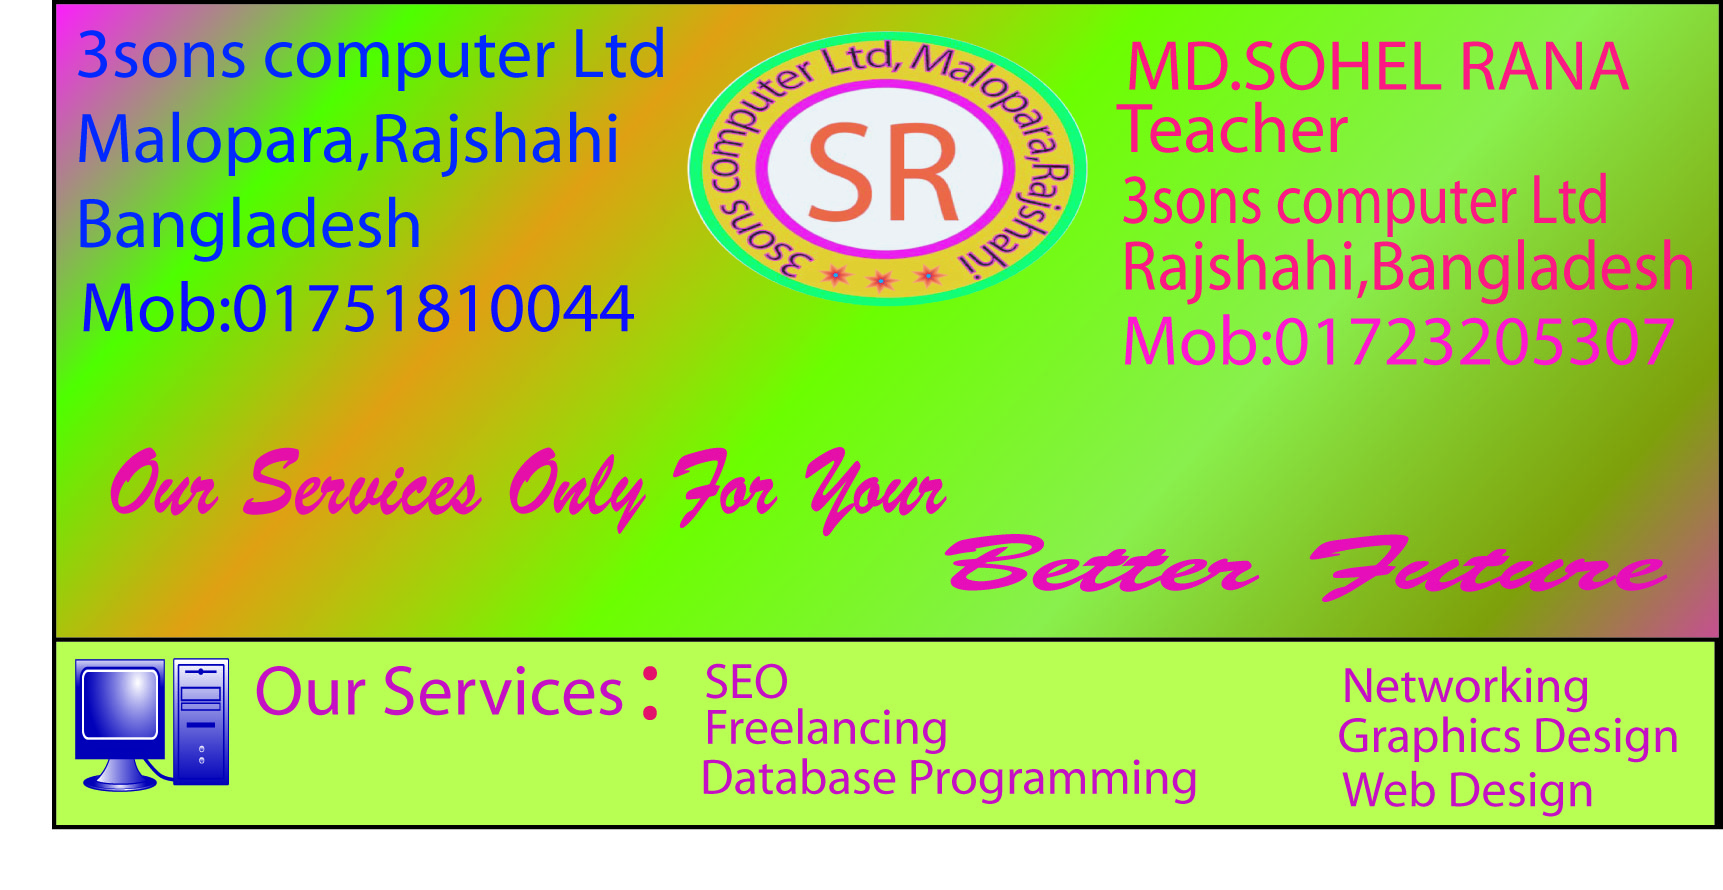 Beautifull Business Card Design within 12 hours